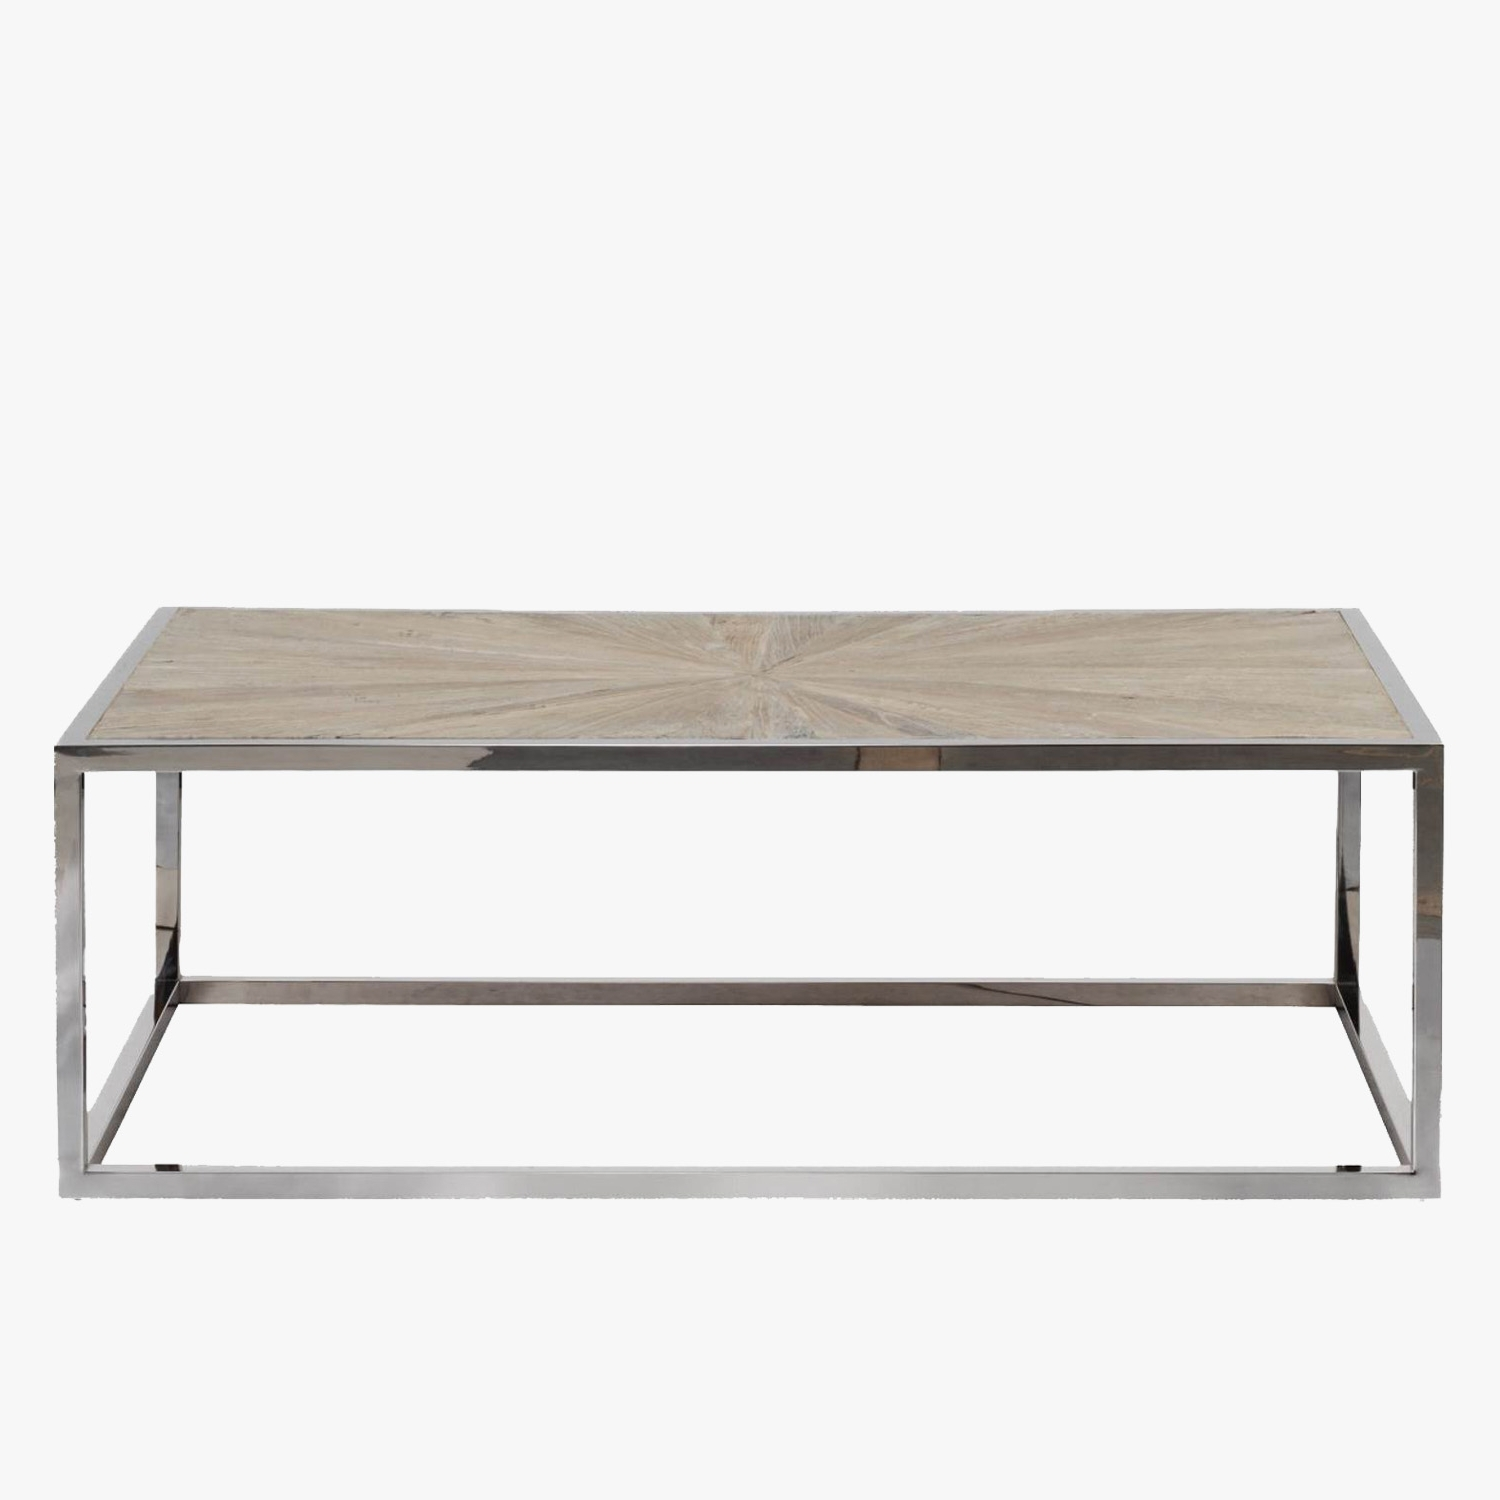 Parquet Top Chrome Coffee Table – Shop Coffee Tables – Dear Keaton Throughout Well Known Parquet Coffee Tables (View 13 of 20)